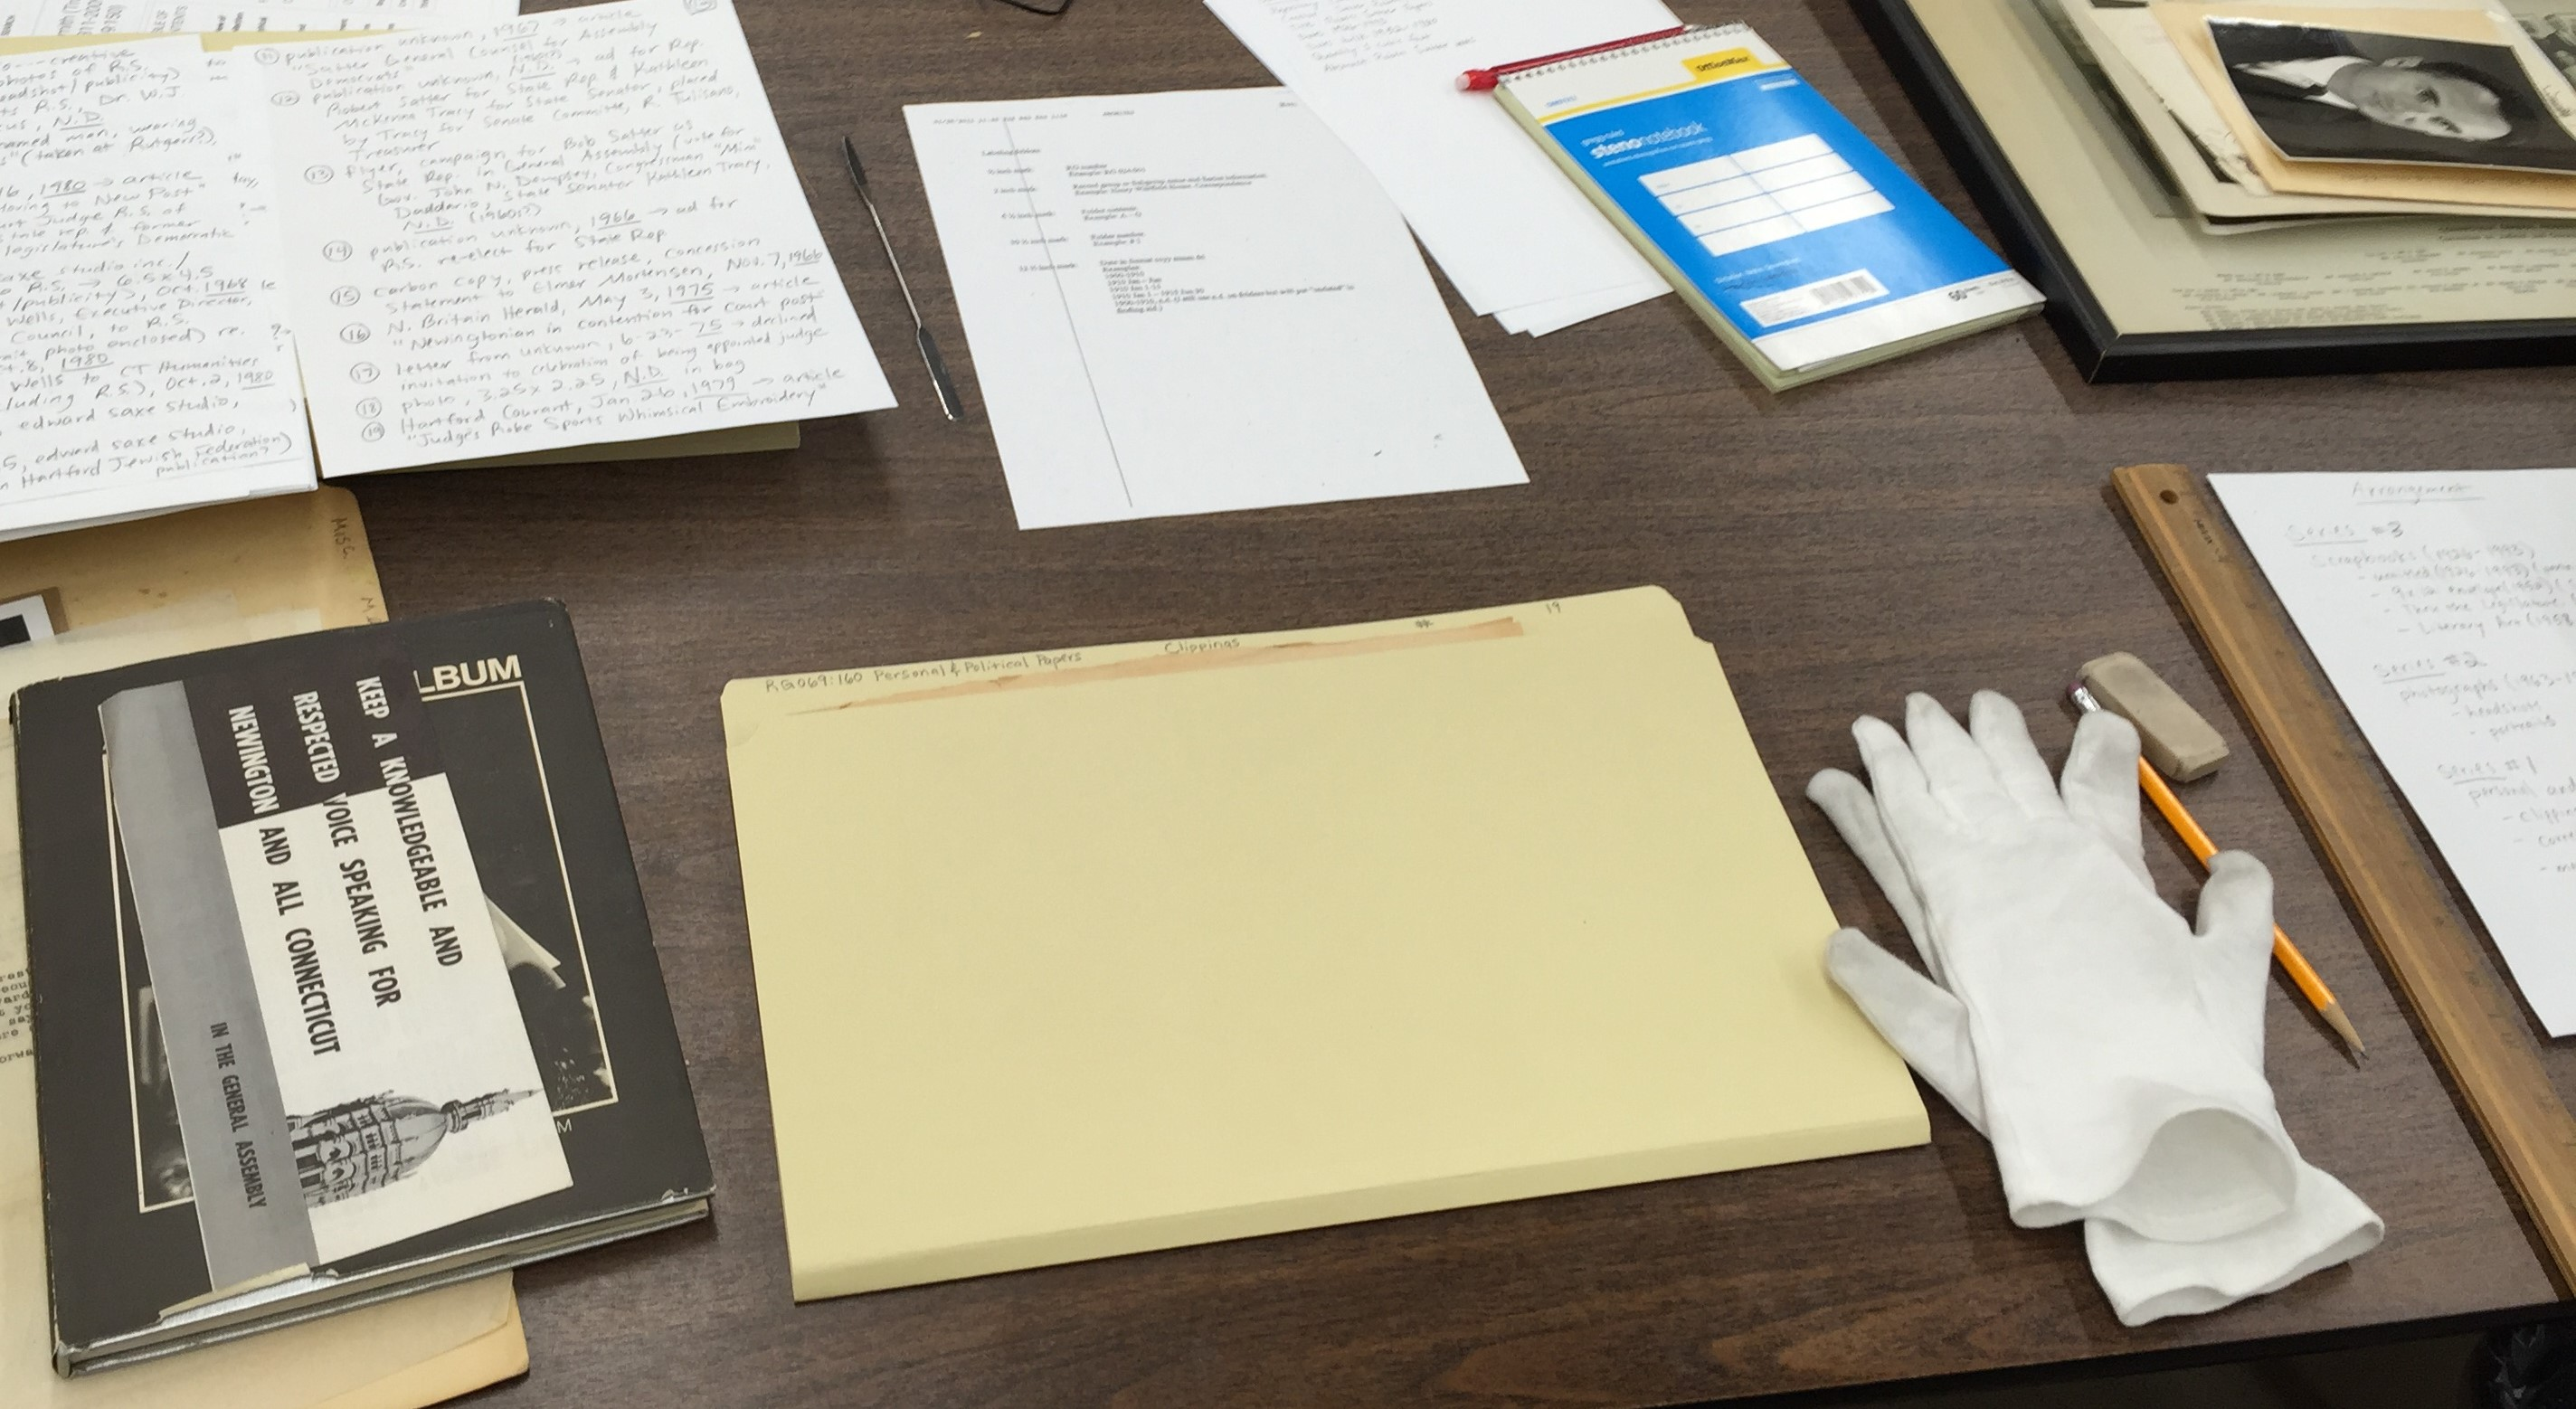 archival materials and processing tools including folders, white cotton gloves, documents, photos, and other ephemera